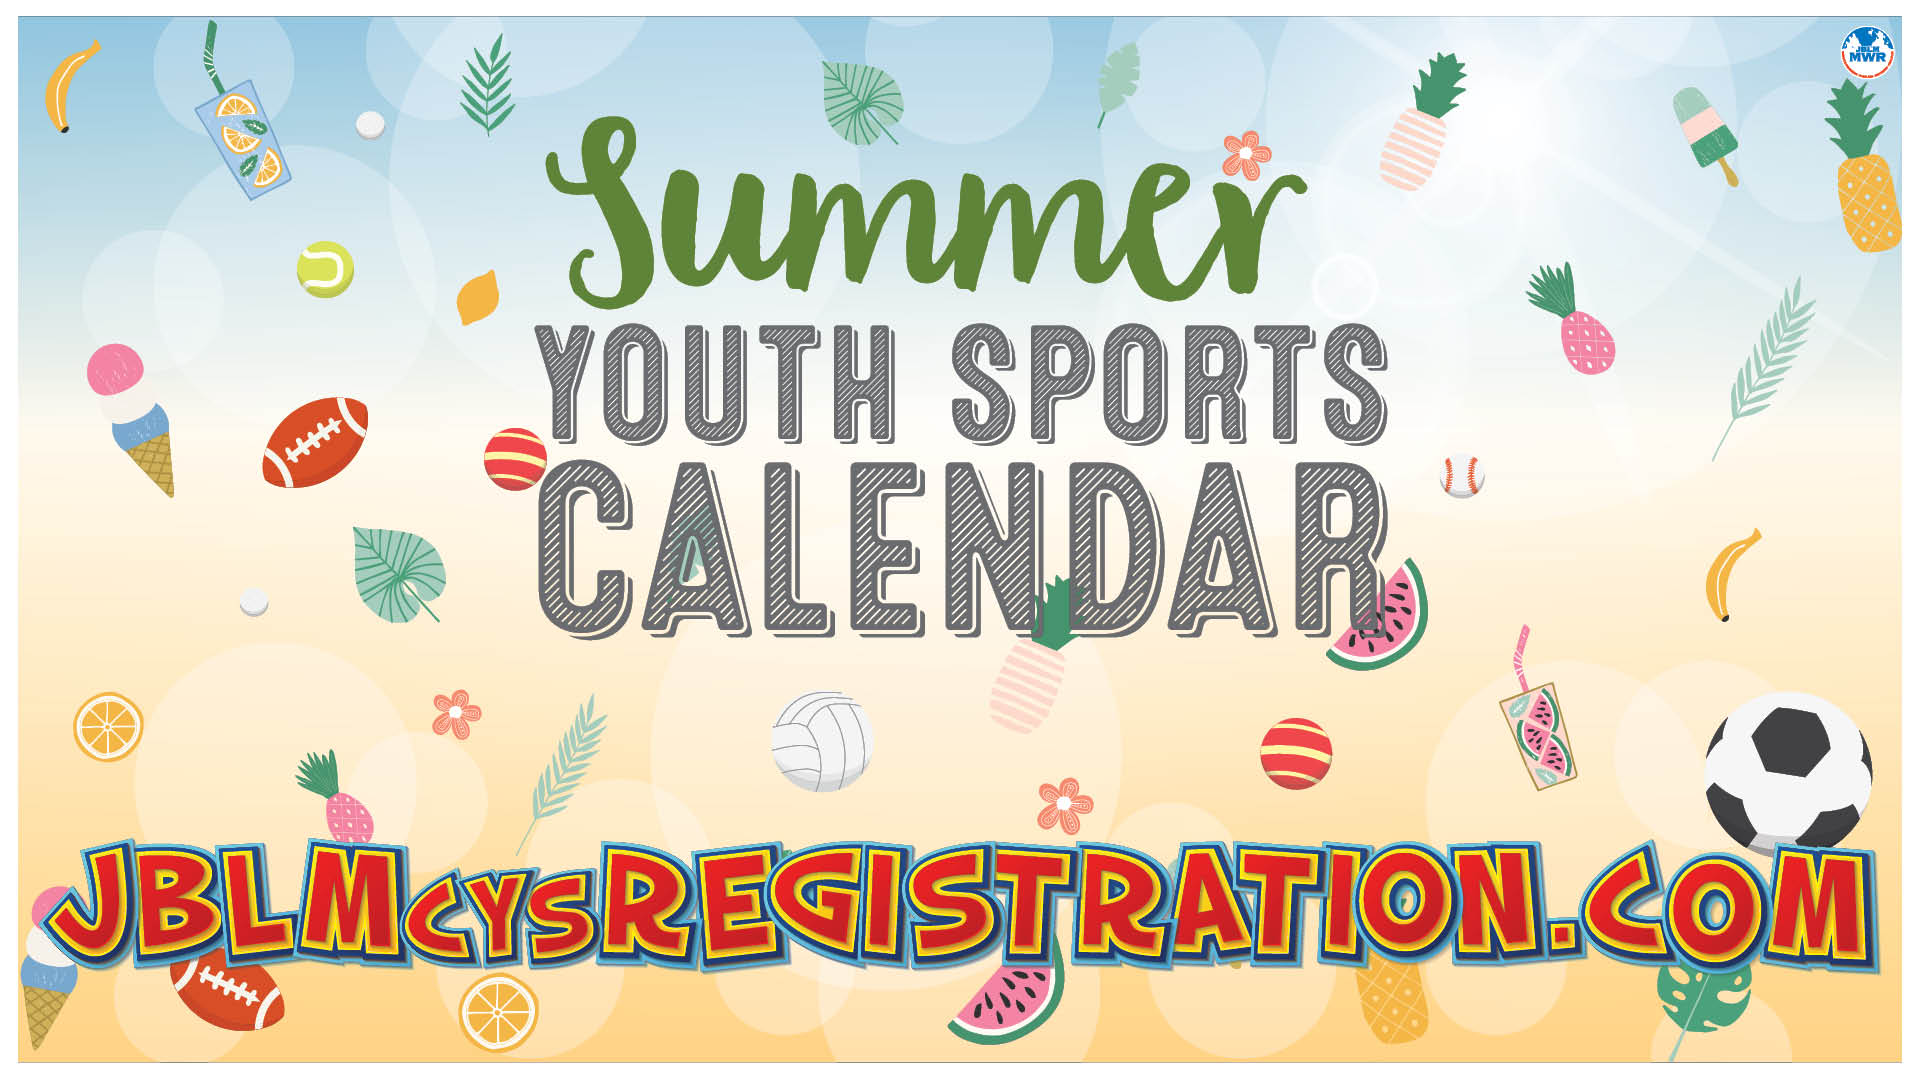 Summer Youth Sports Calendar